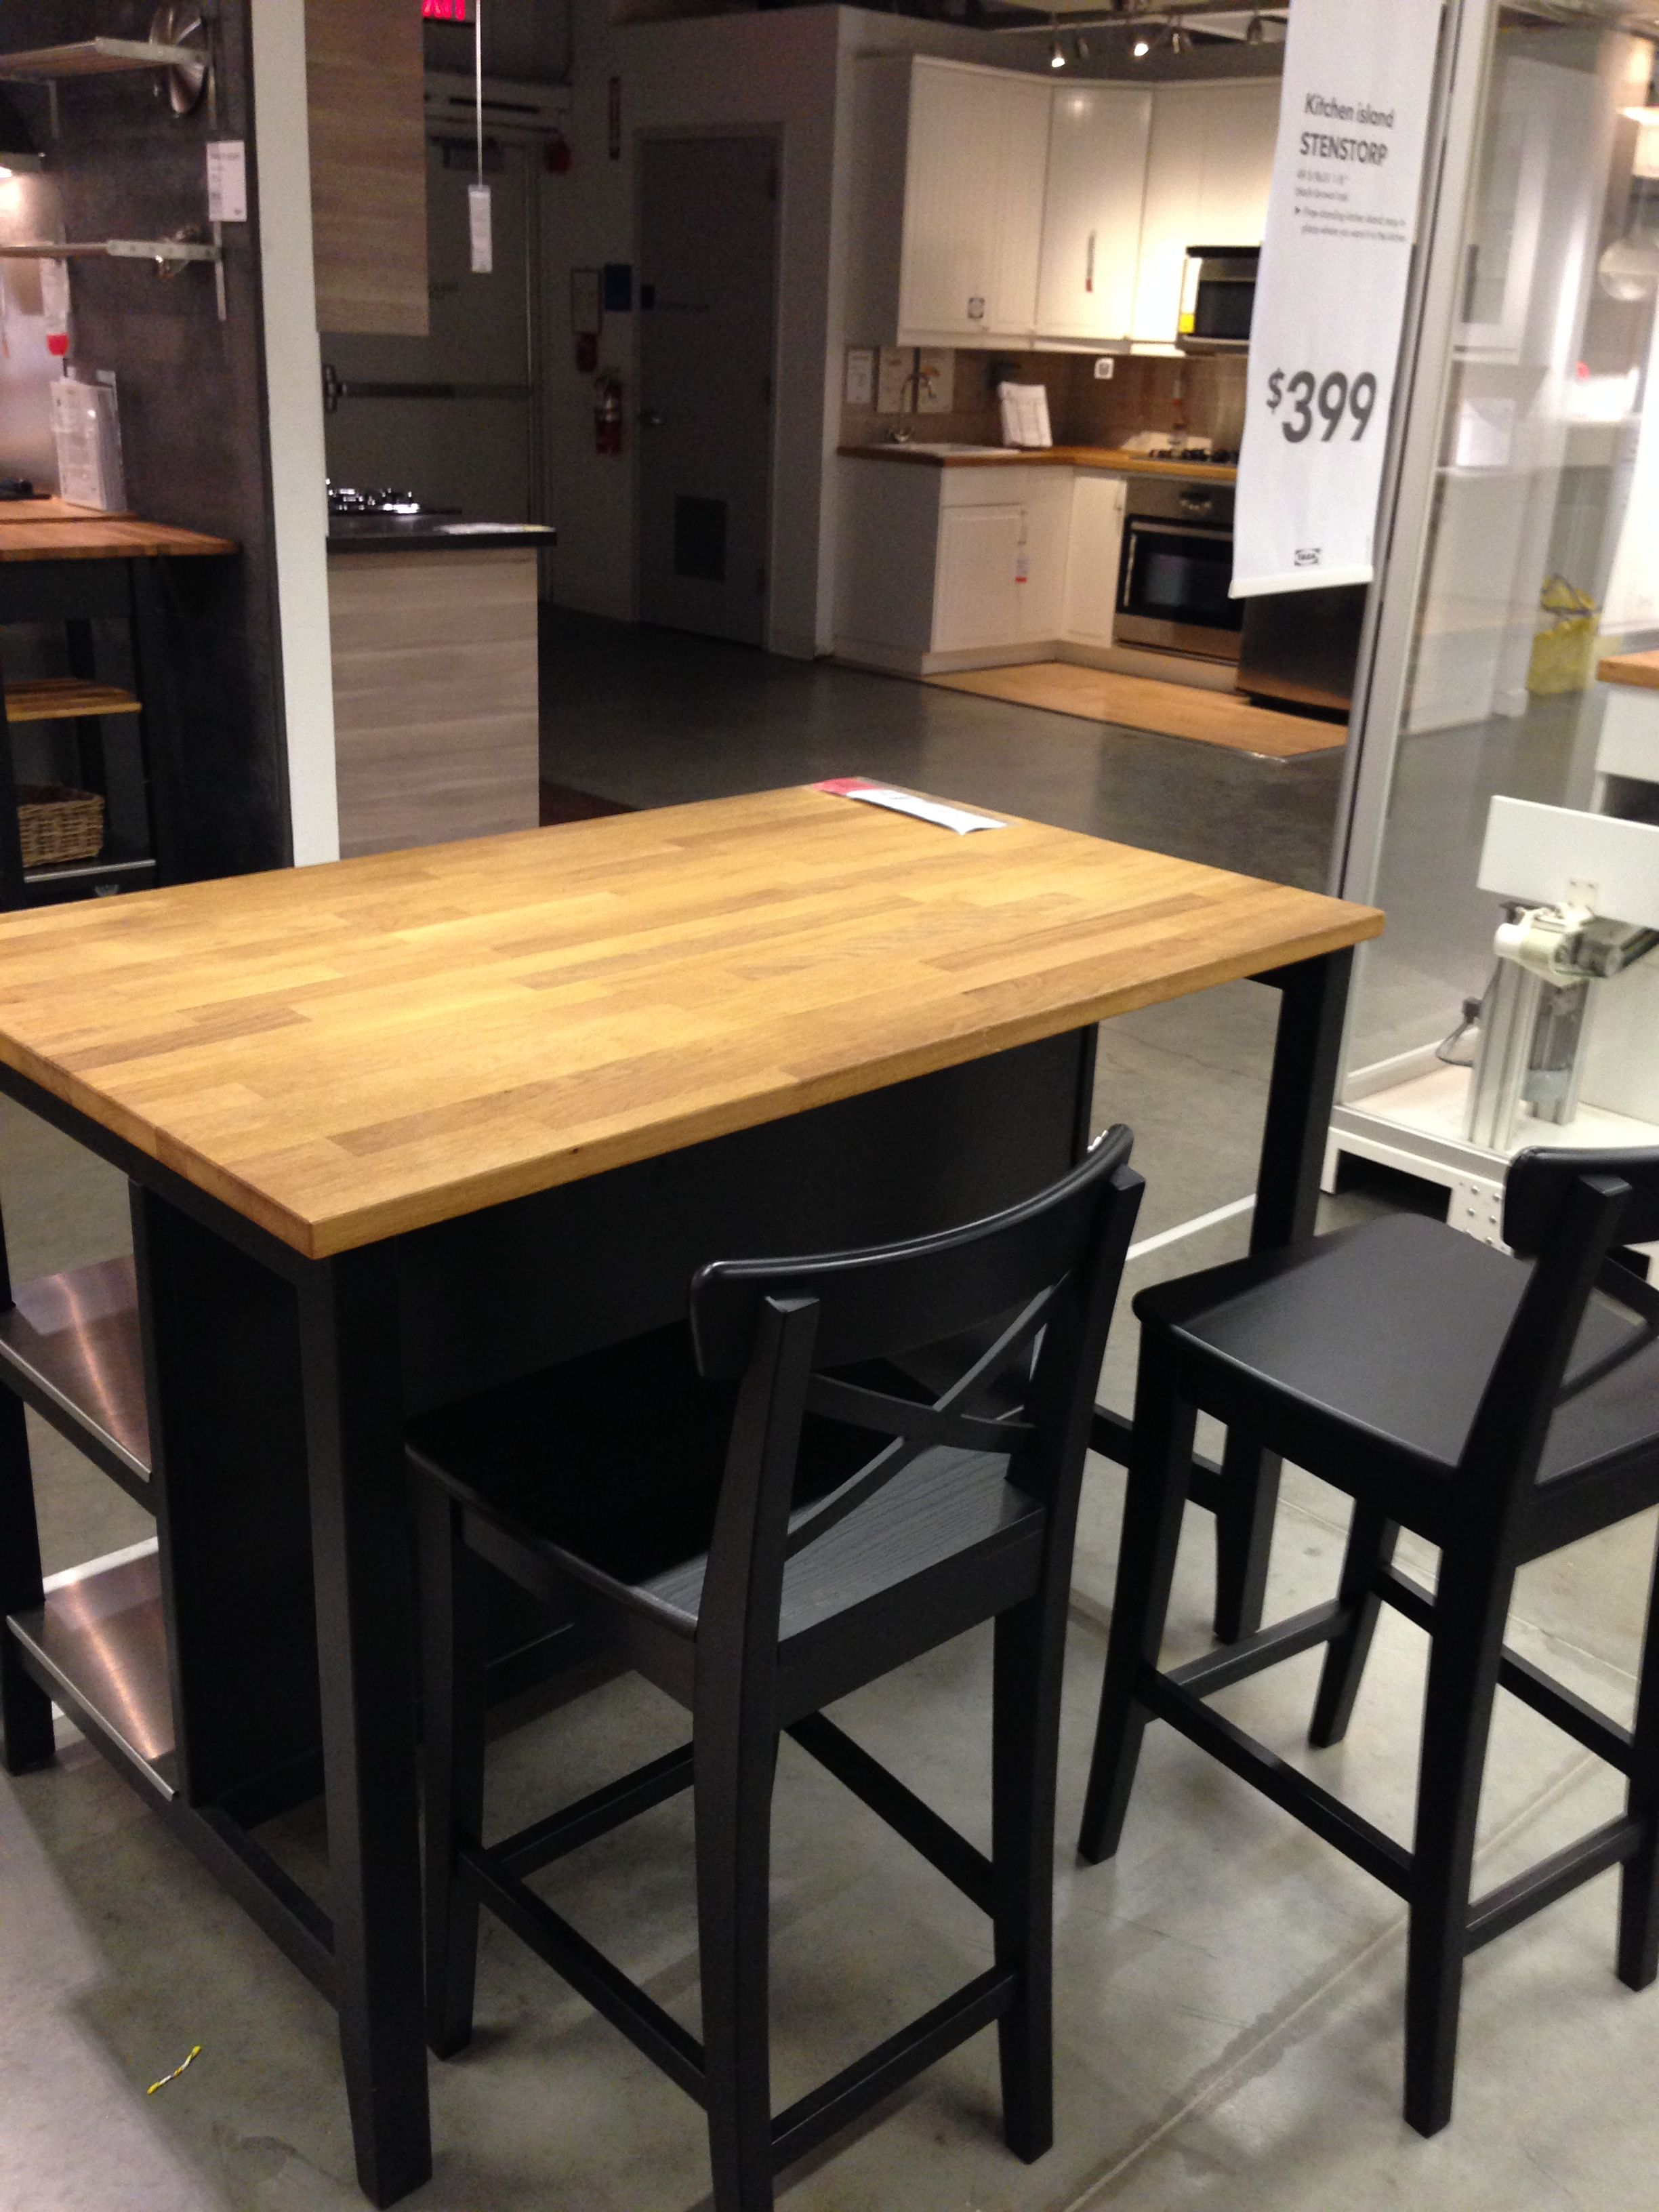 Pin by Audra Manzano on Woodstock  Kitchen island with